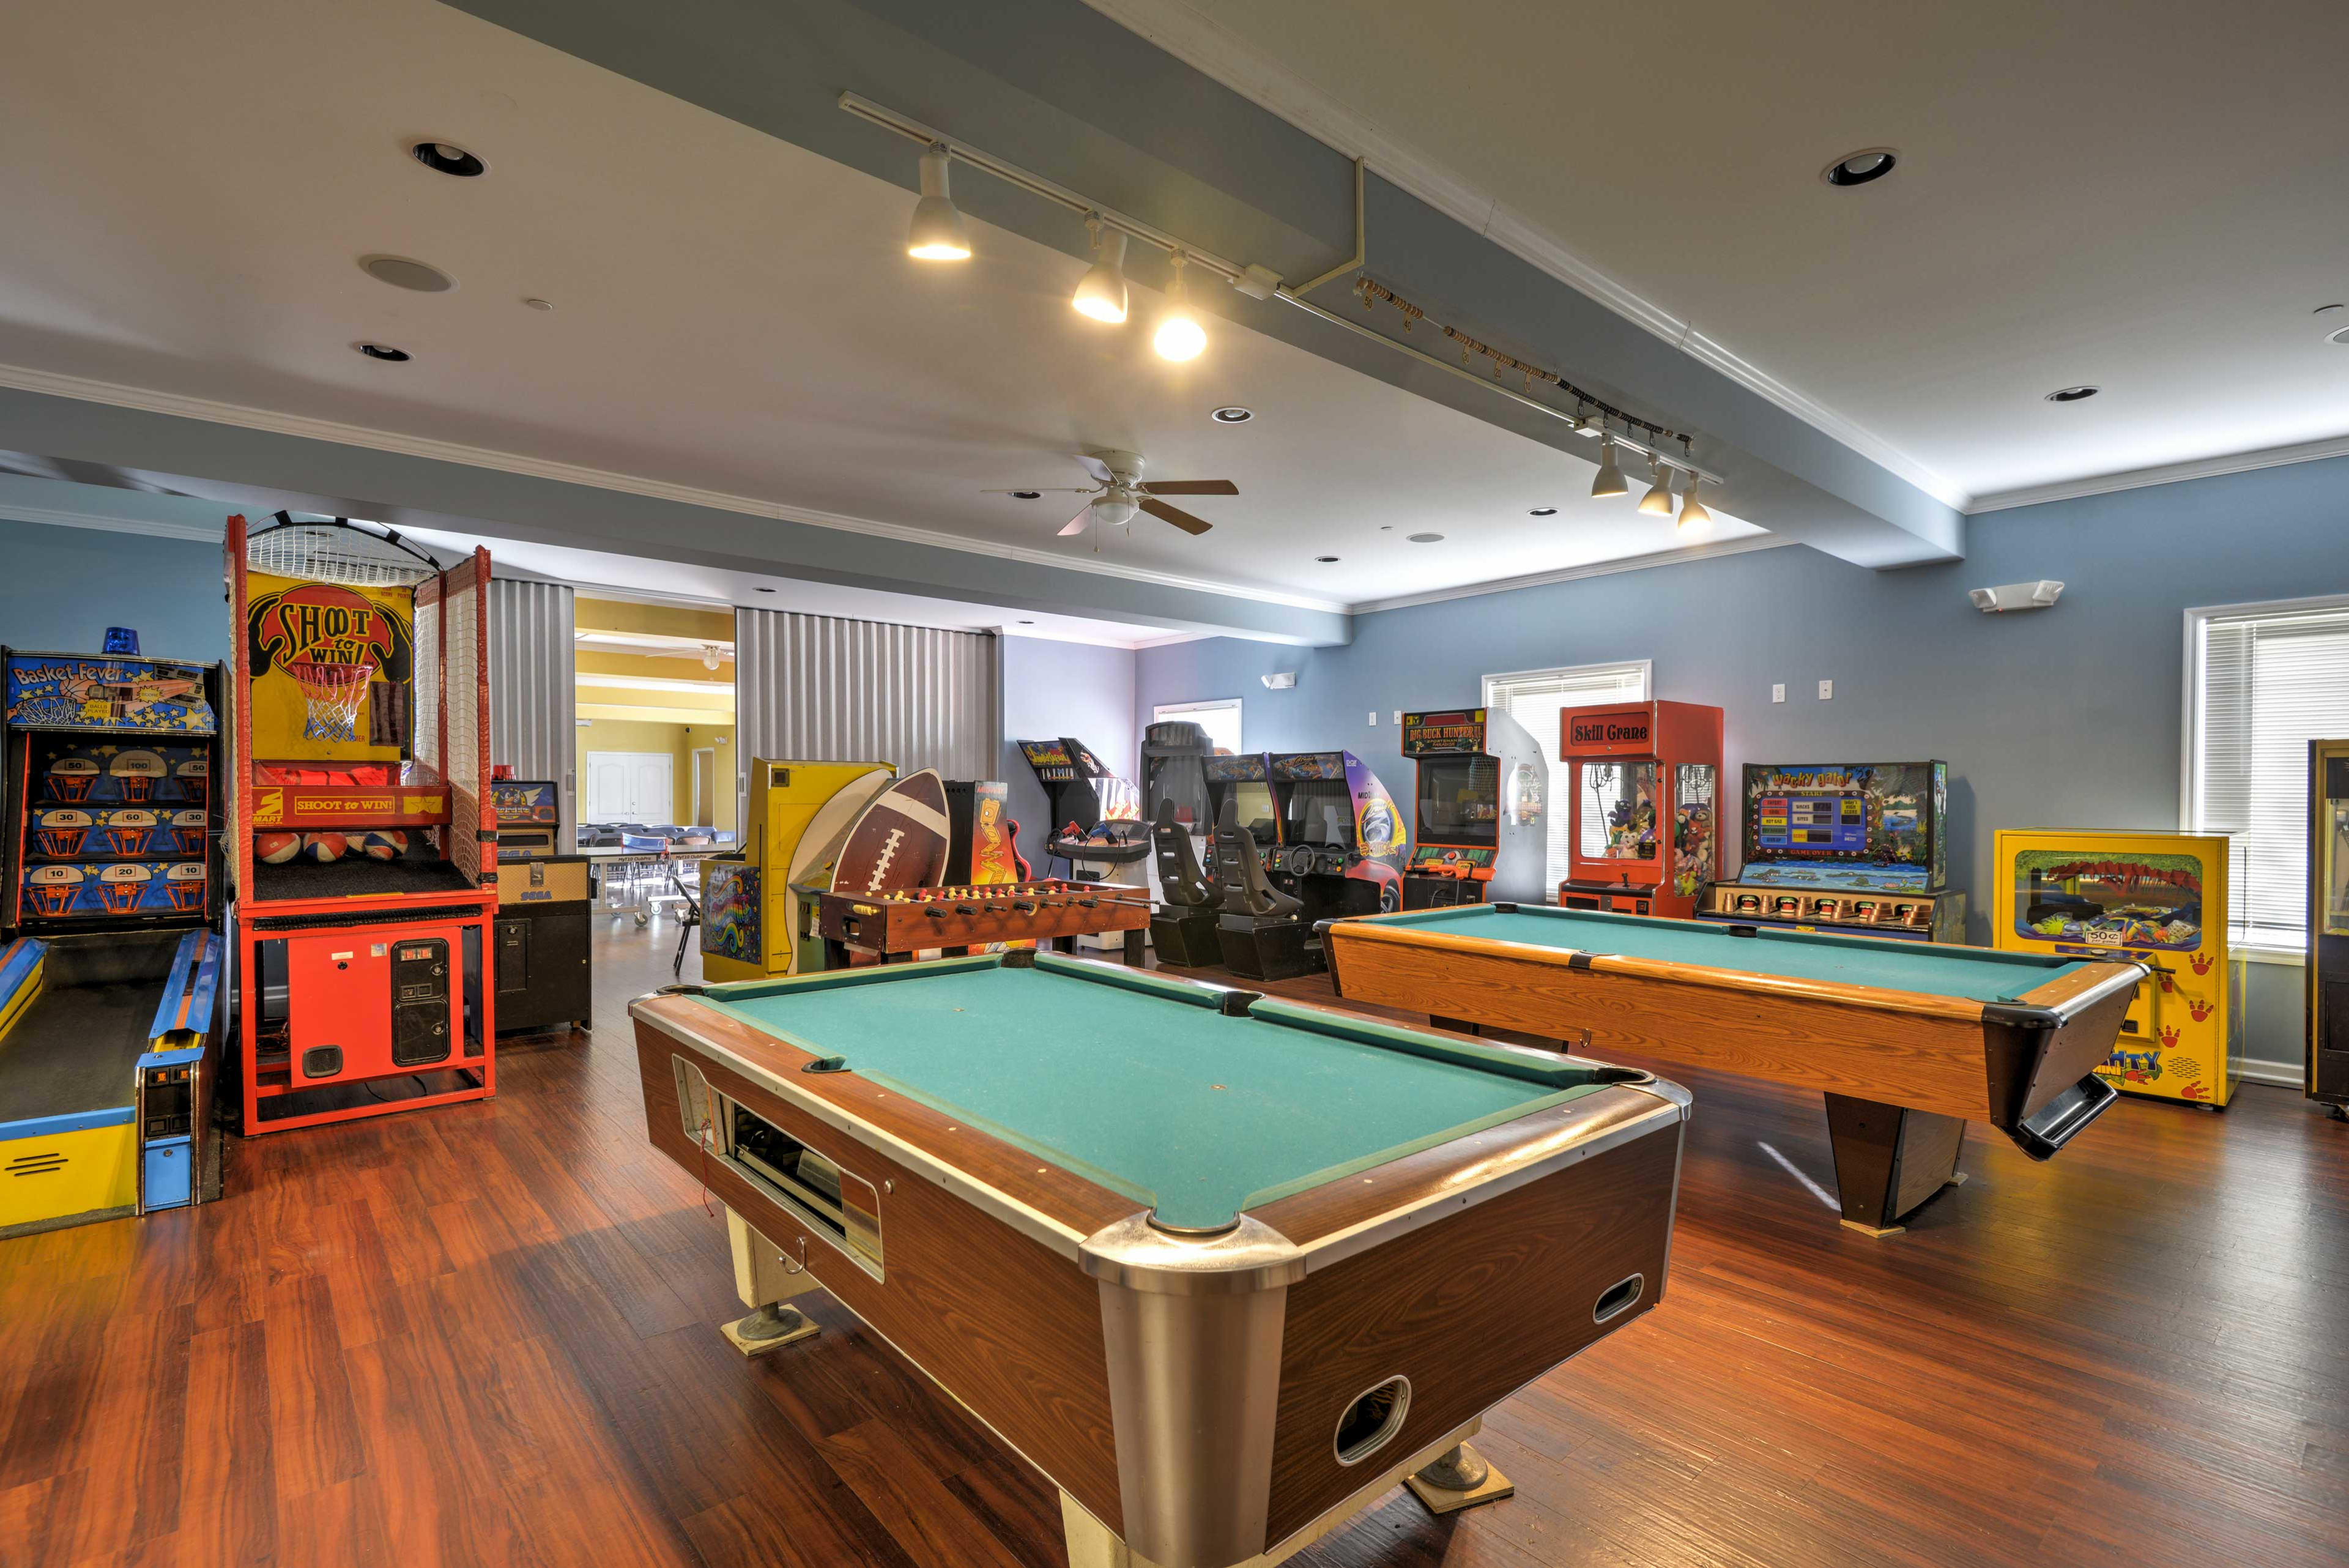 Kids will love the community's game room!